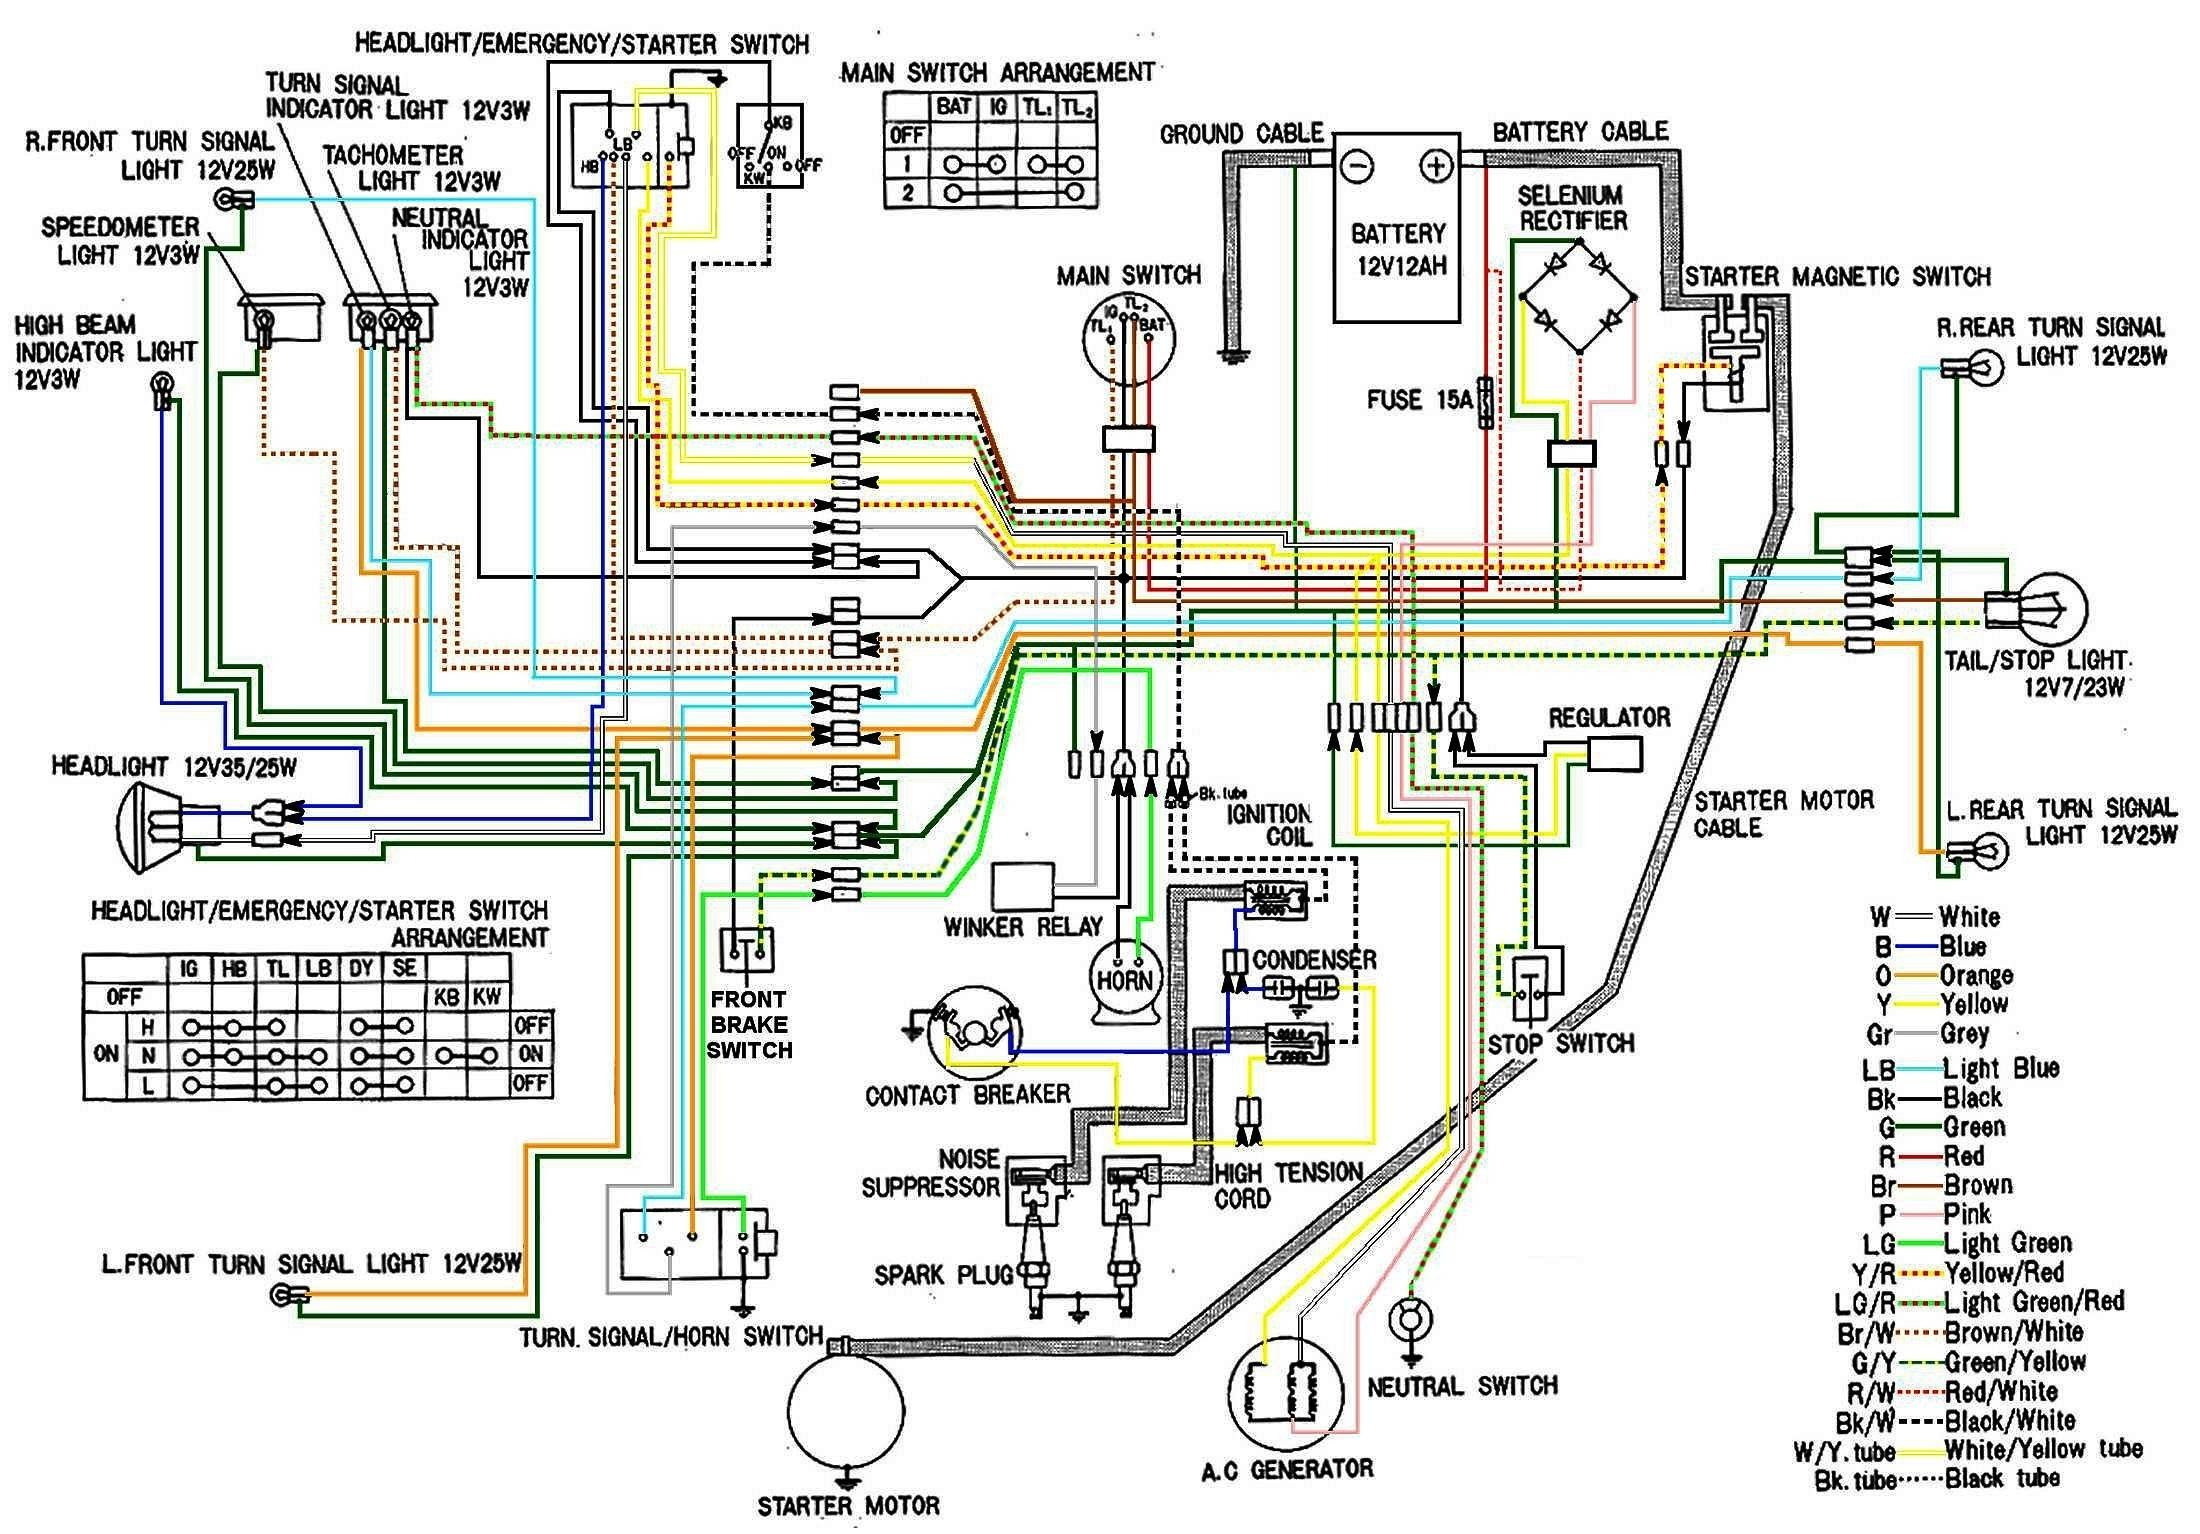 small resolution of unique wiring diagram for home telephone diagram diagramsample diagramtemplate wiringdiagram diagramchart worksheet worksheettemplate